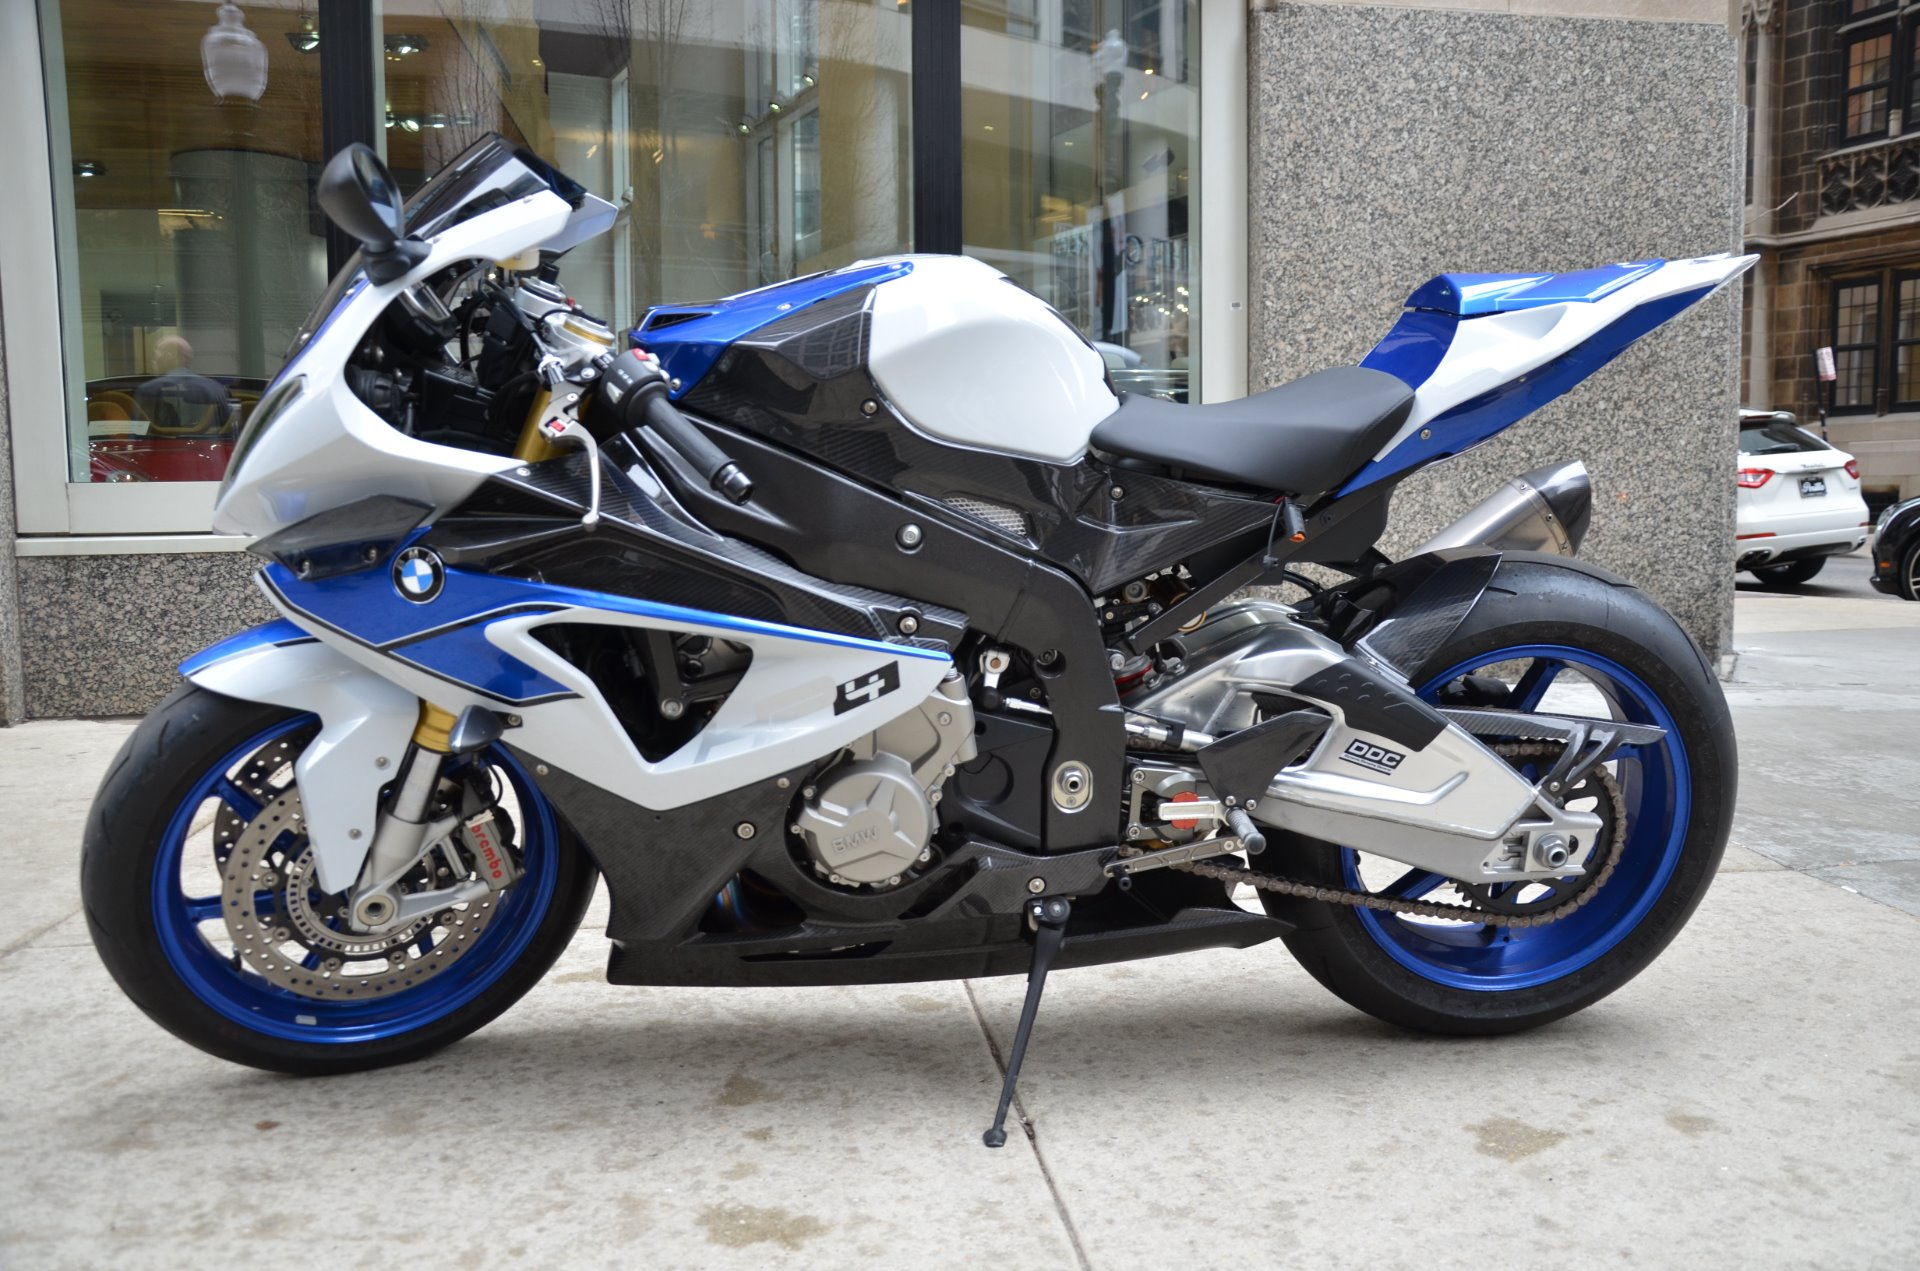 2013 bmw hp4 street motorcycle sport stock # 96658 for sale near